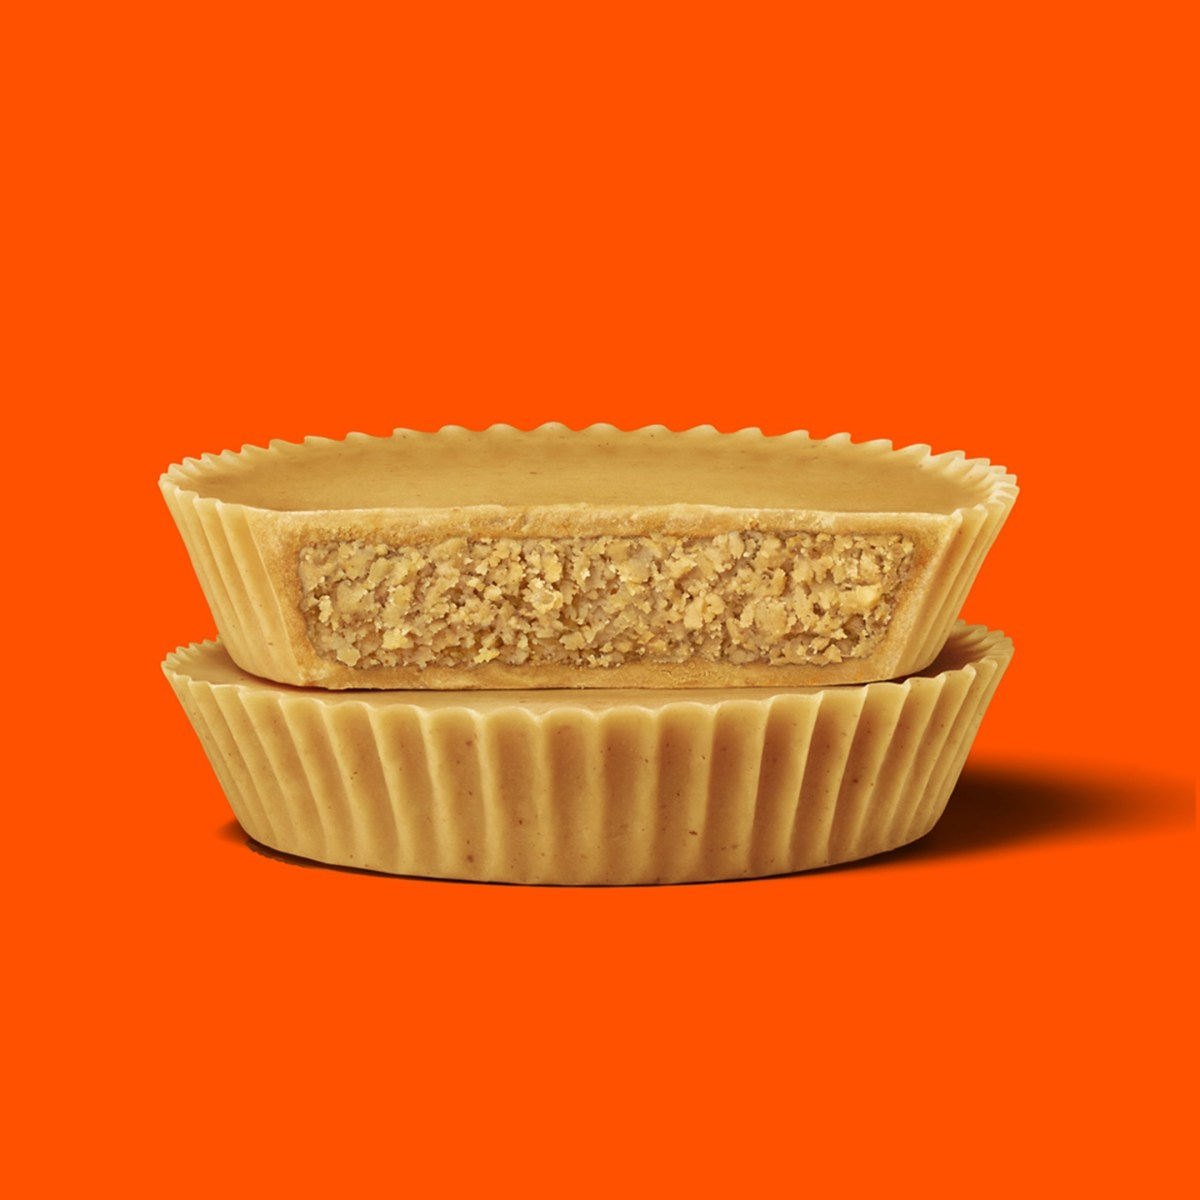 Strange but true: Reese's introduces a peanut butter cup without the chocolate | Boing Boing